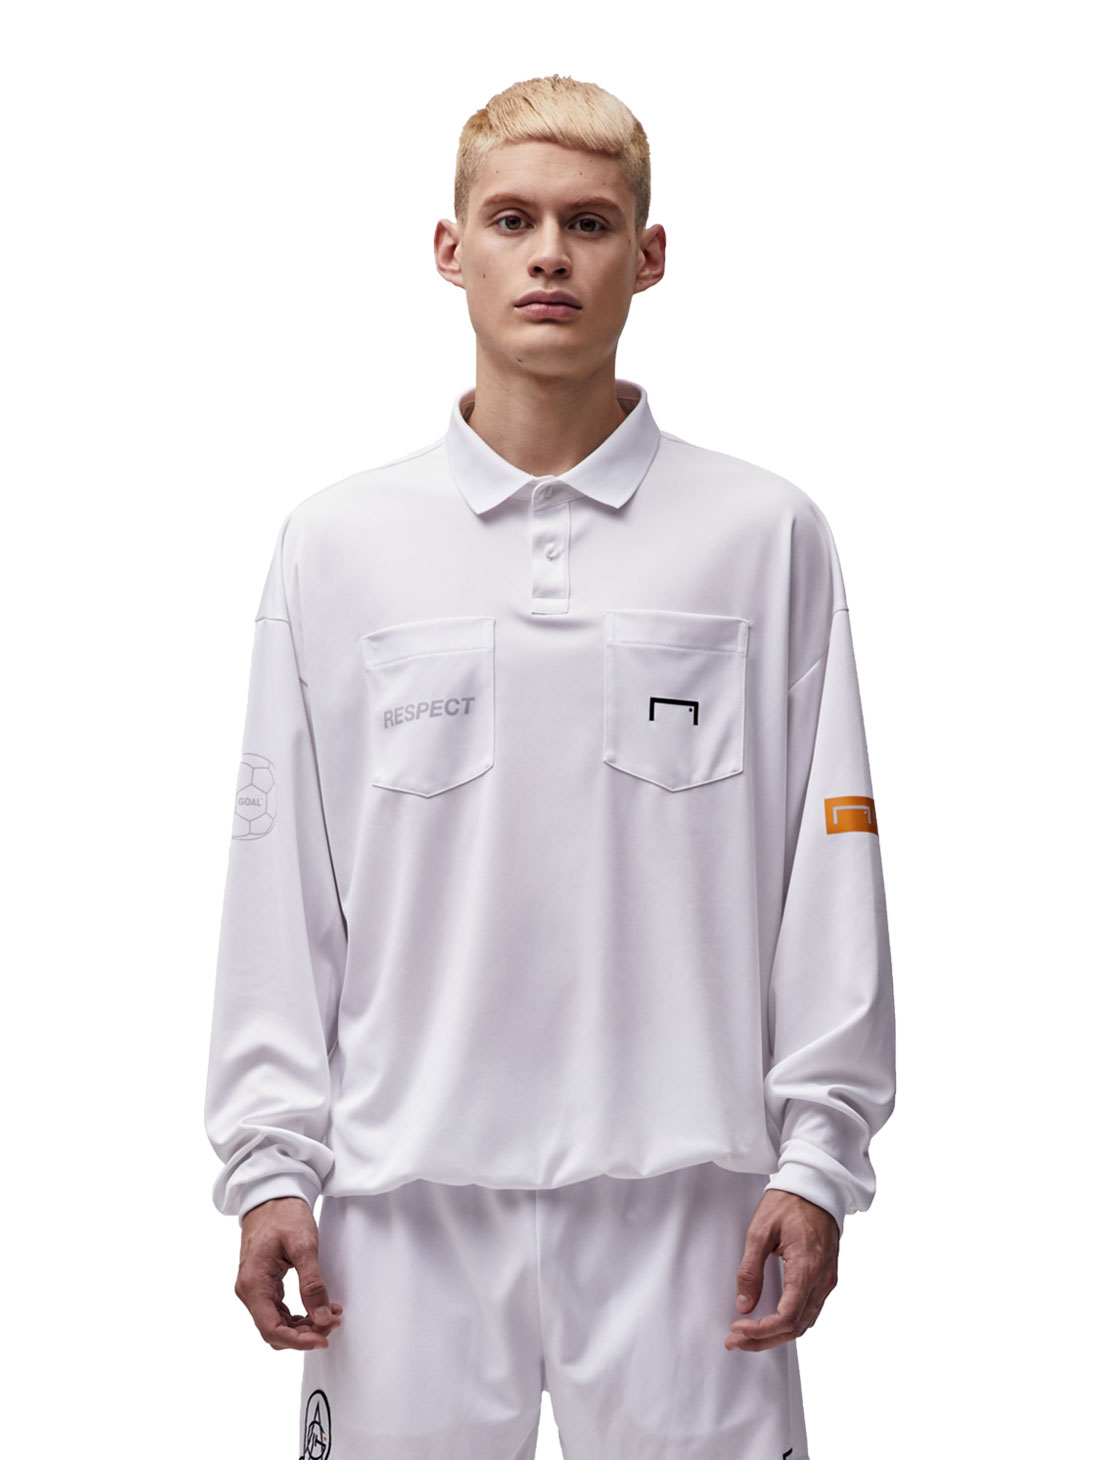 GOALSTUDIO RESPECT REFEREE SHIRT - WHITE